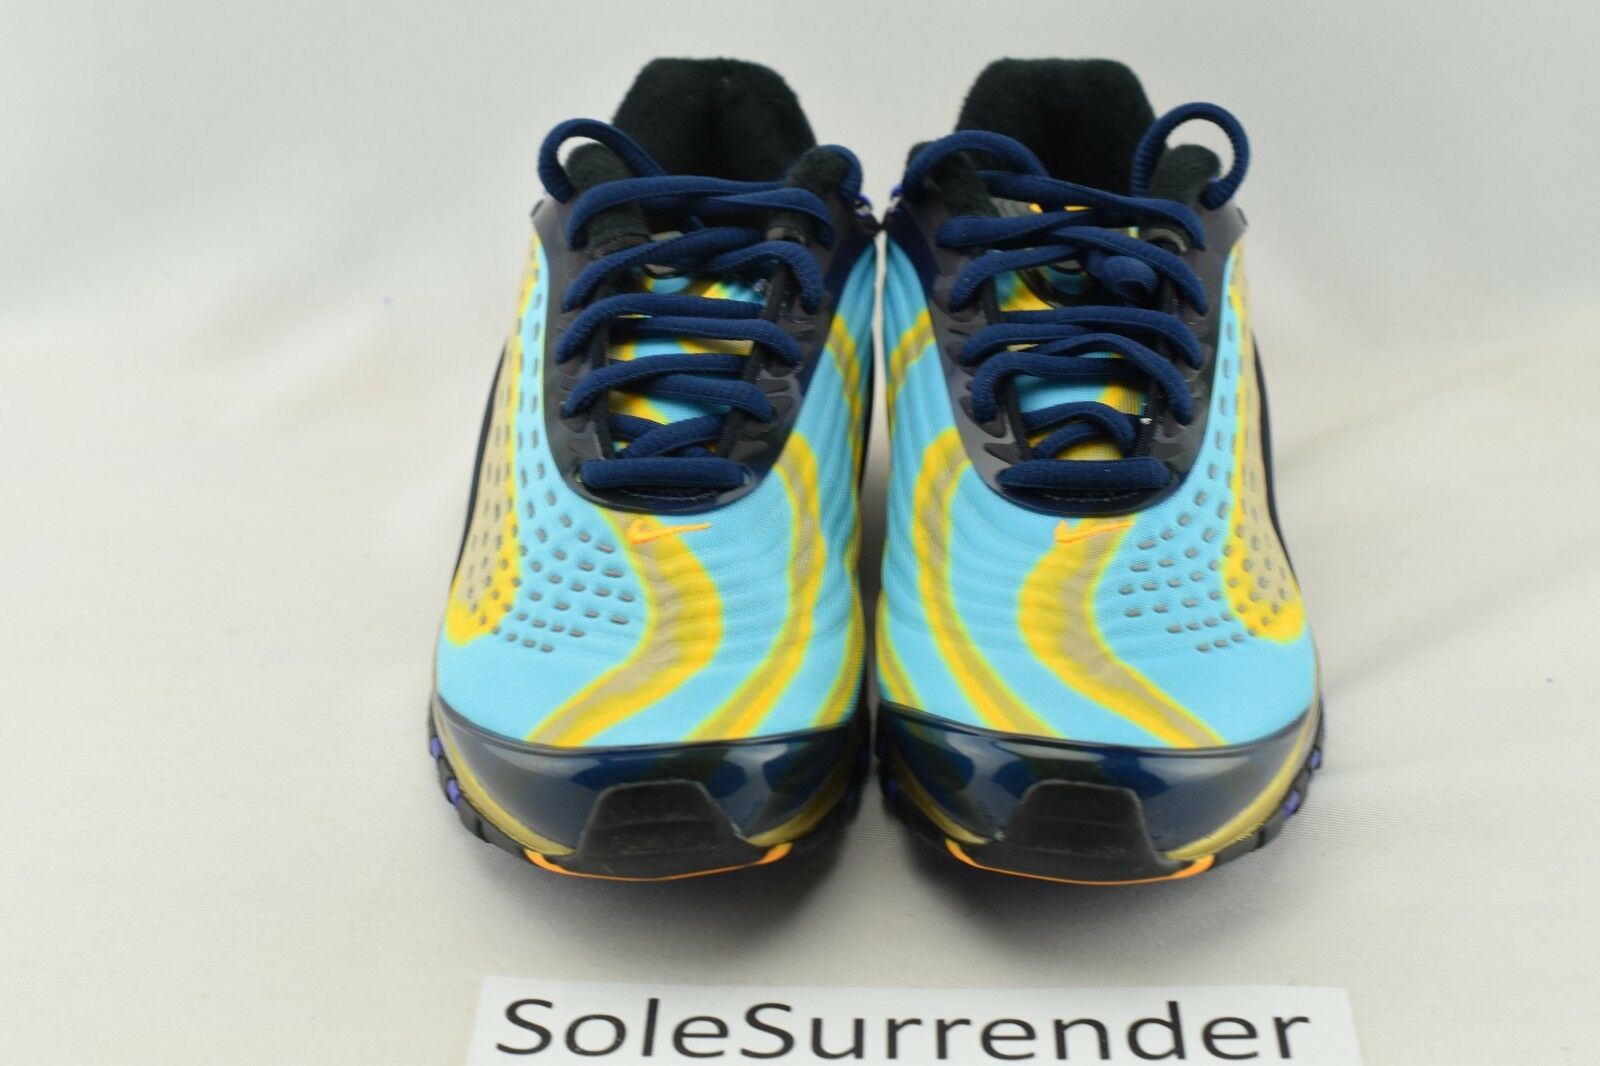 Women's Nike Air Max Deluxe SIZE 5.5 AQ1272 400 Navy Blue Yellow Black OG QS